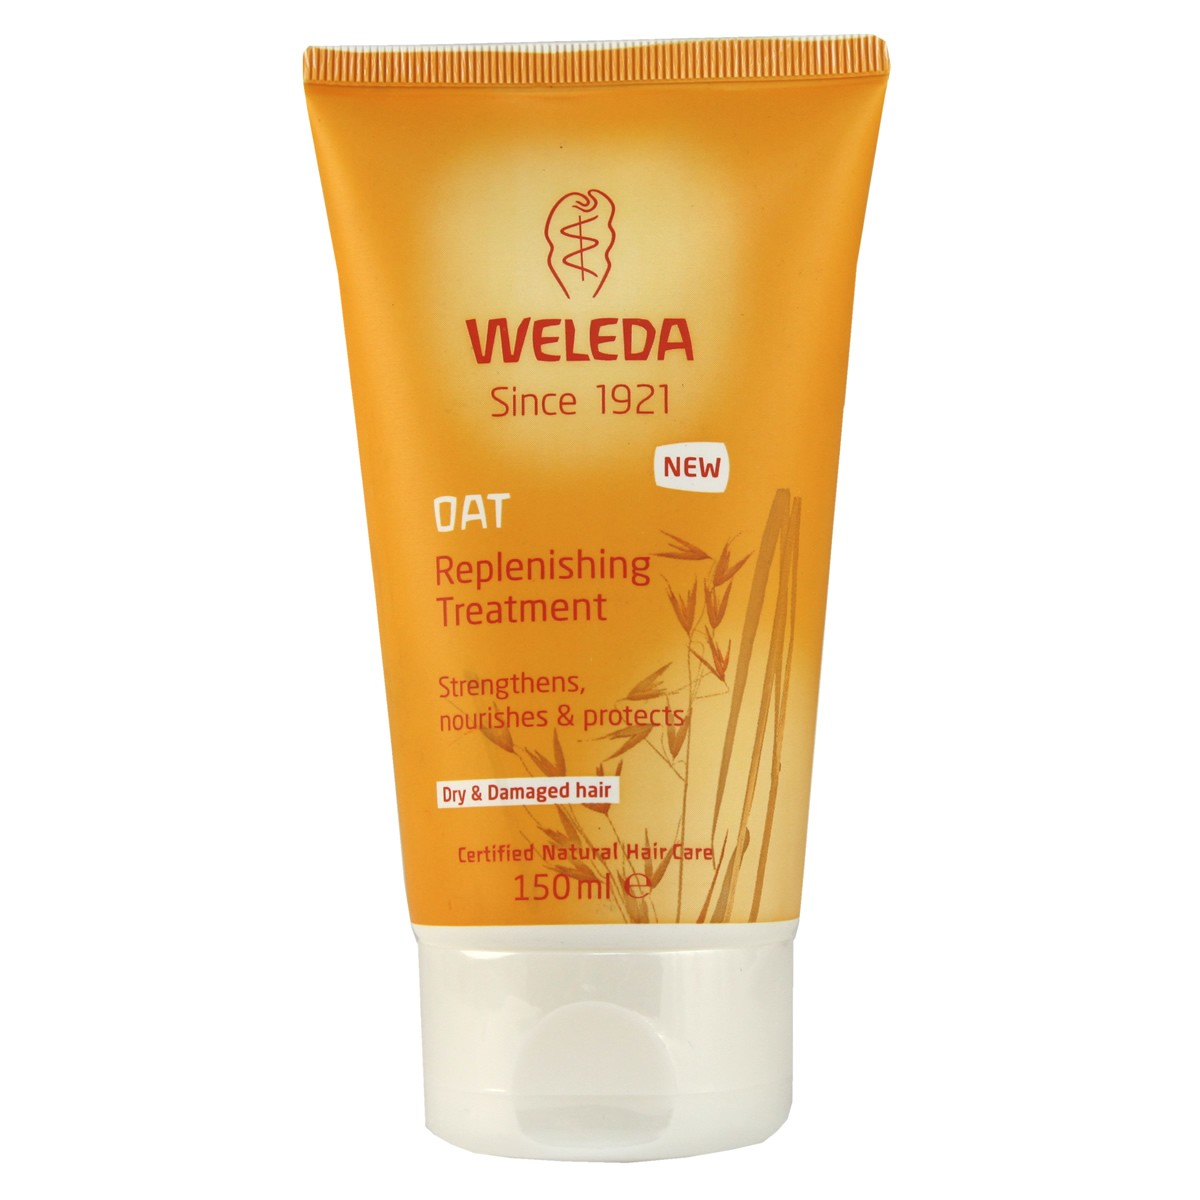 Weleda Oat Replenishing Treatment For Dry & Damaged Hair